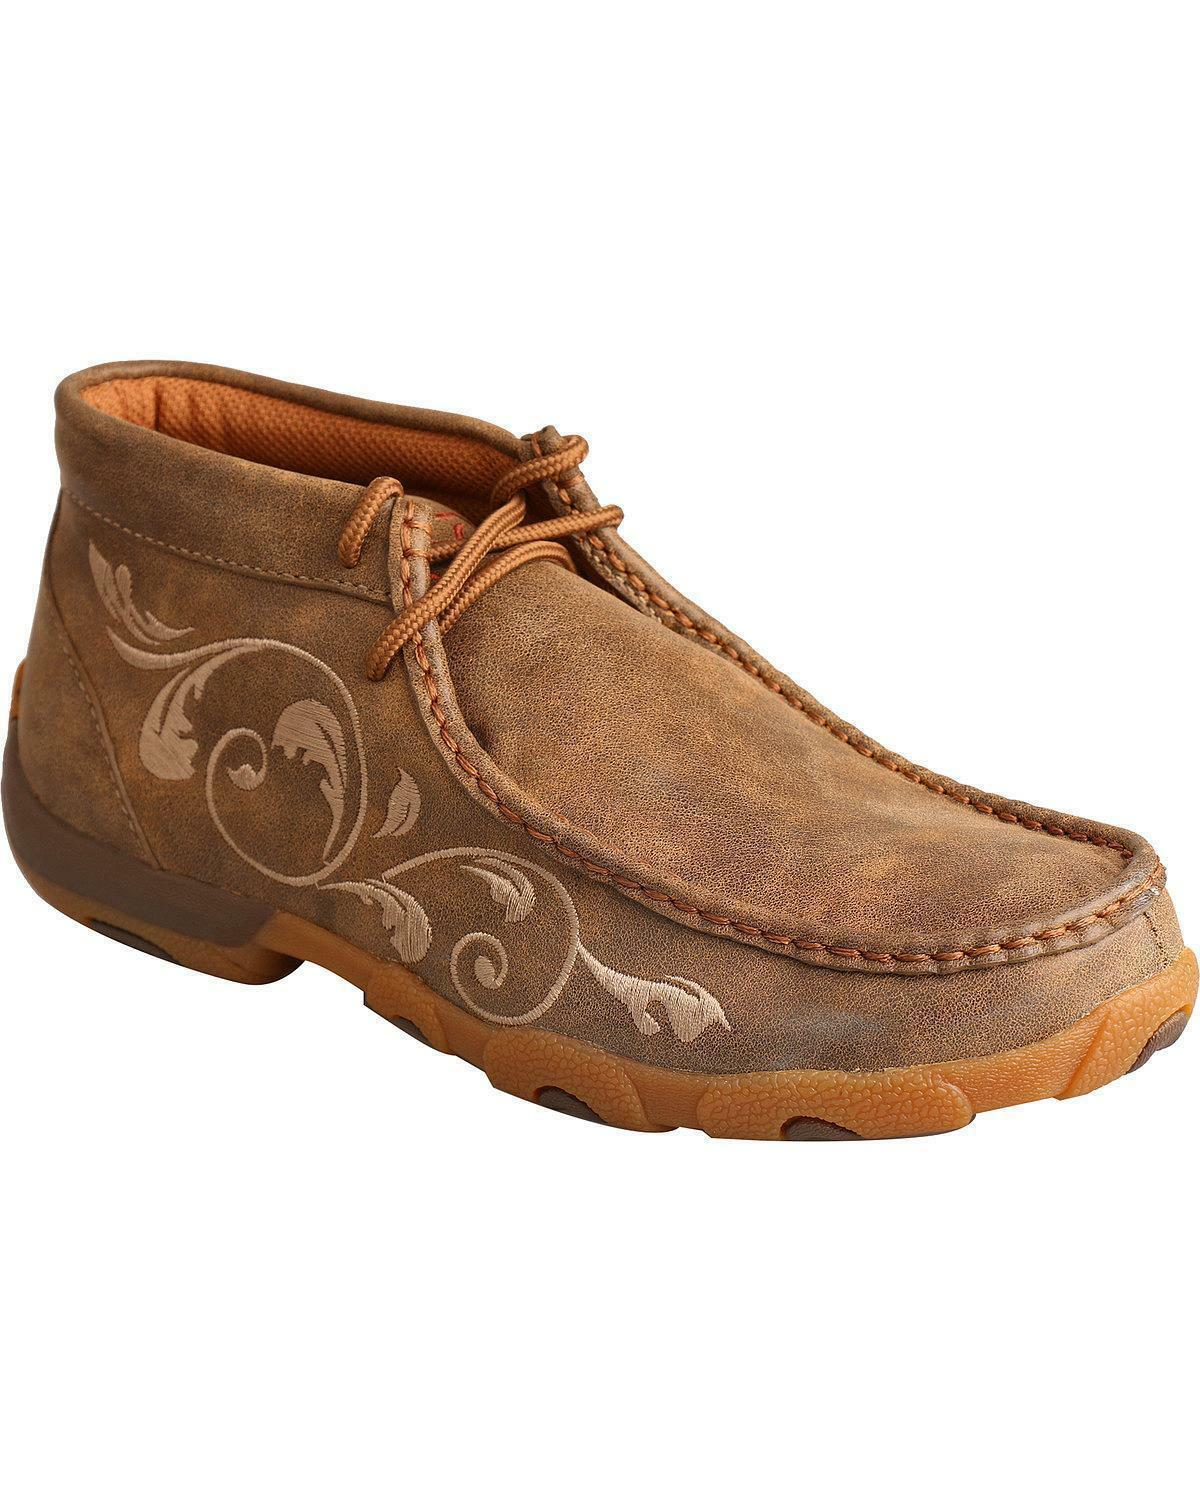 Twisted X Women's Embroidered Lace-Up Driving Driving Driving Mocs - WDM0041 a665d3